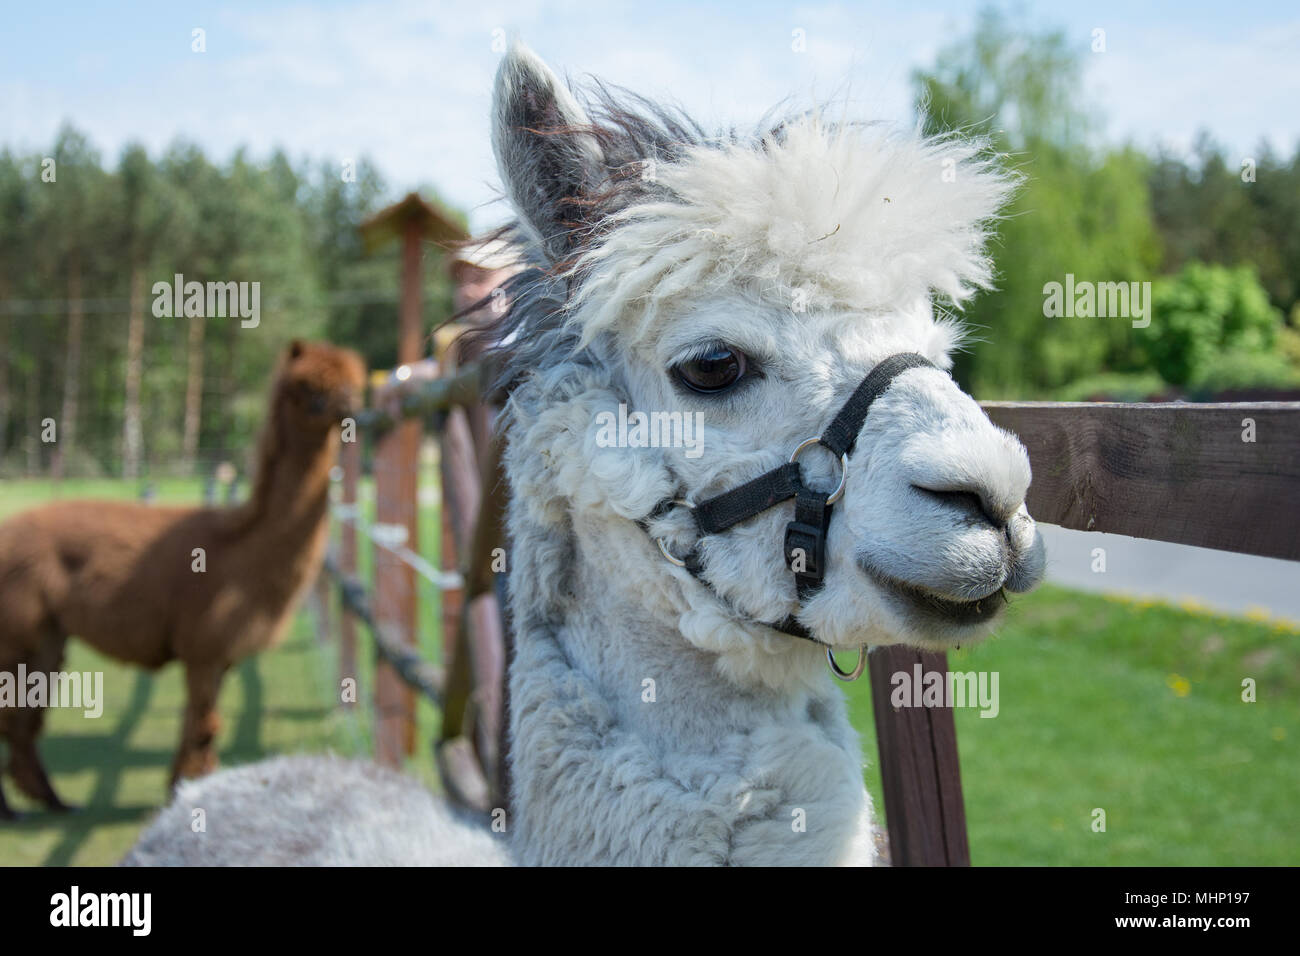 Closeup of a head of white alpaca with big black eyes and delicate muzzle Stock Photo